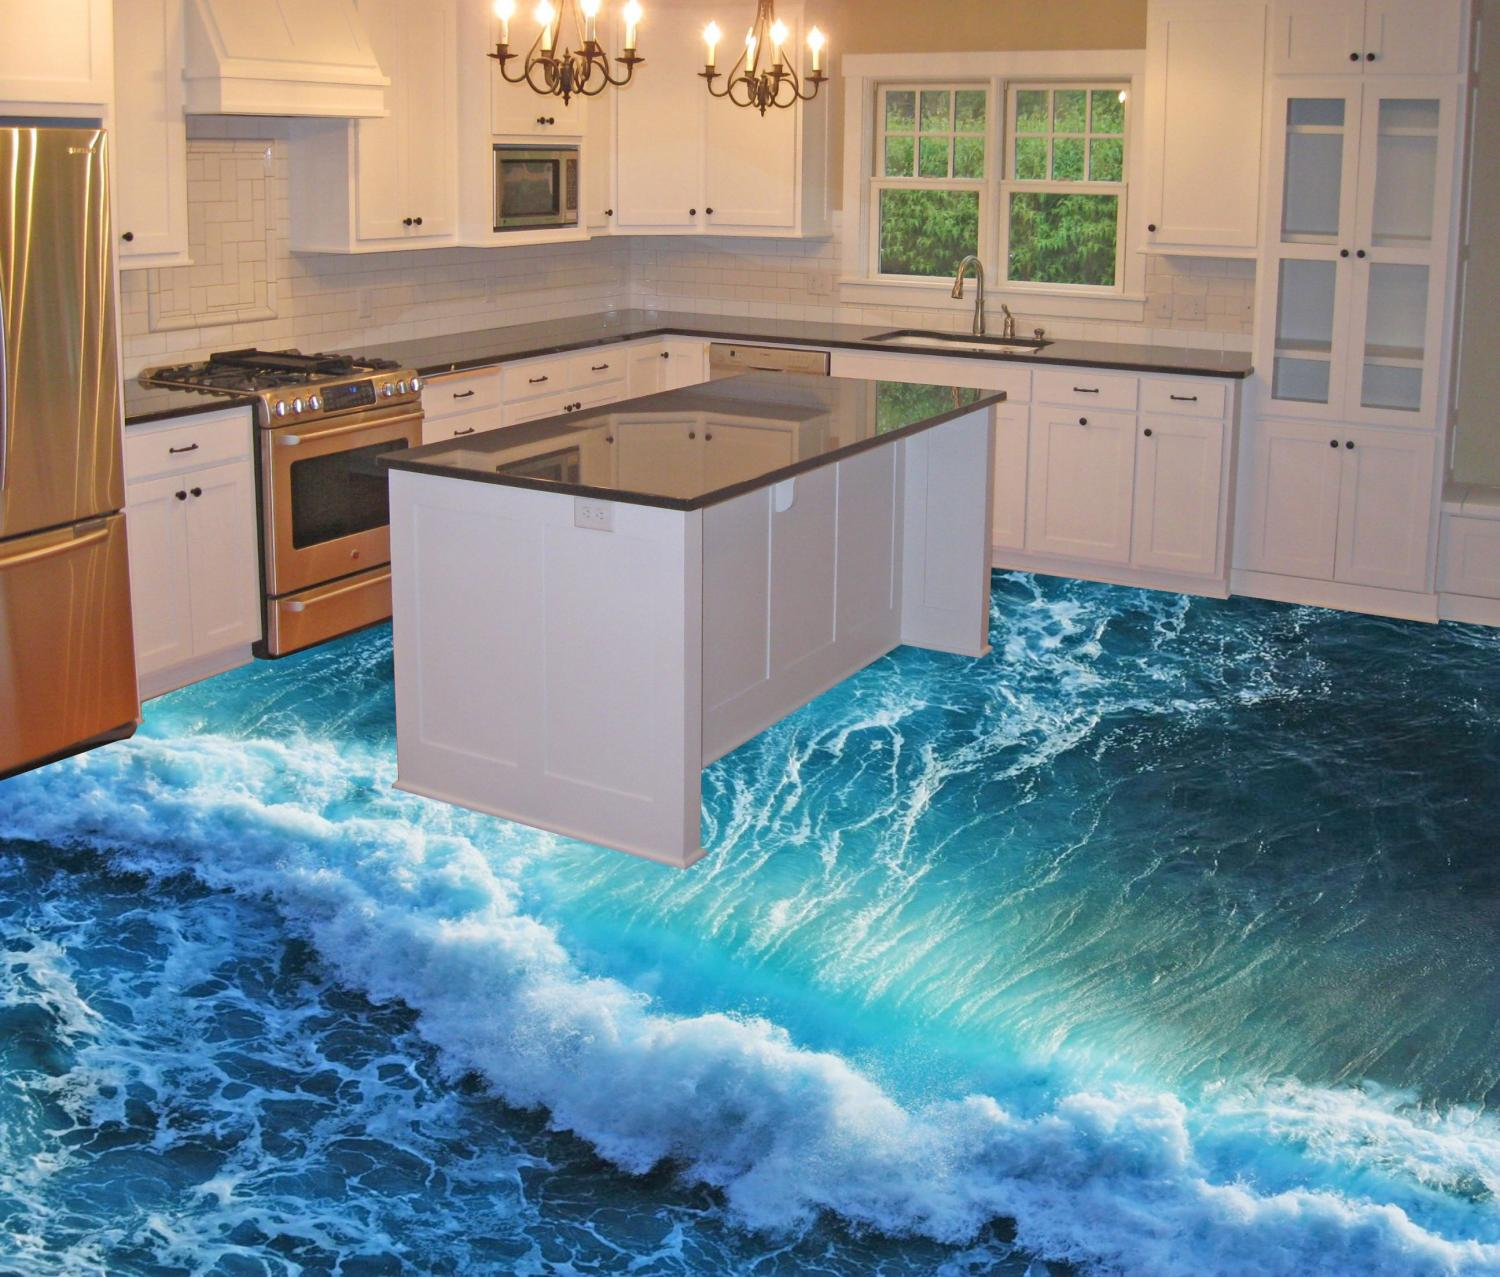 3D Epoxy Floors That Will Turn Your Room Into a Beach - illusion 3d flooring